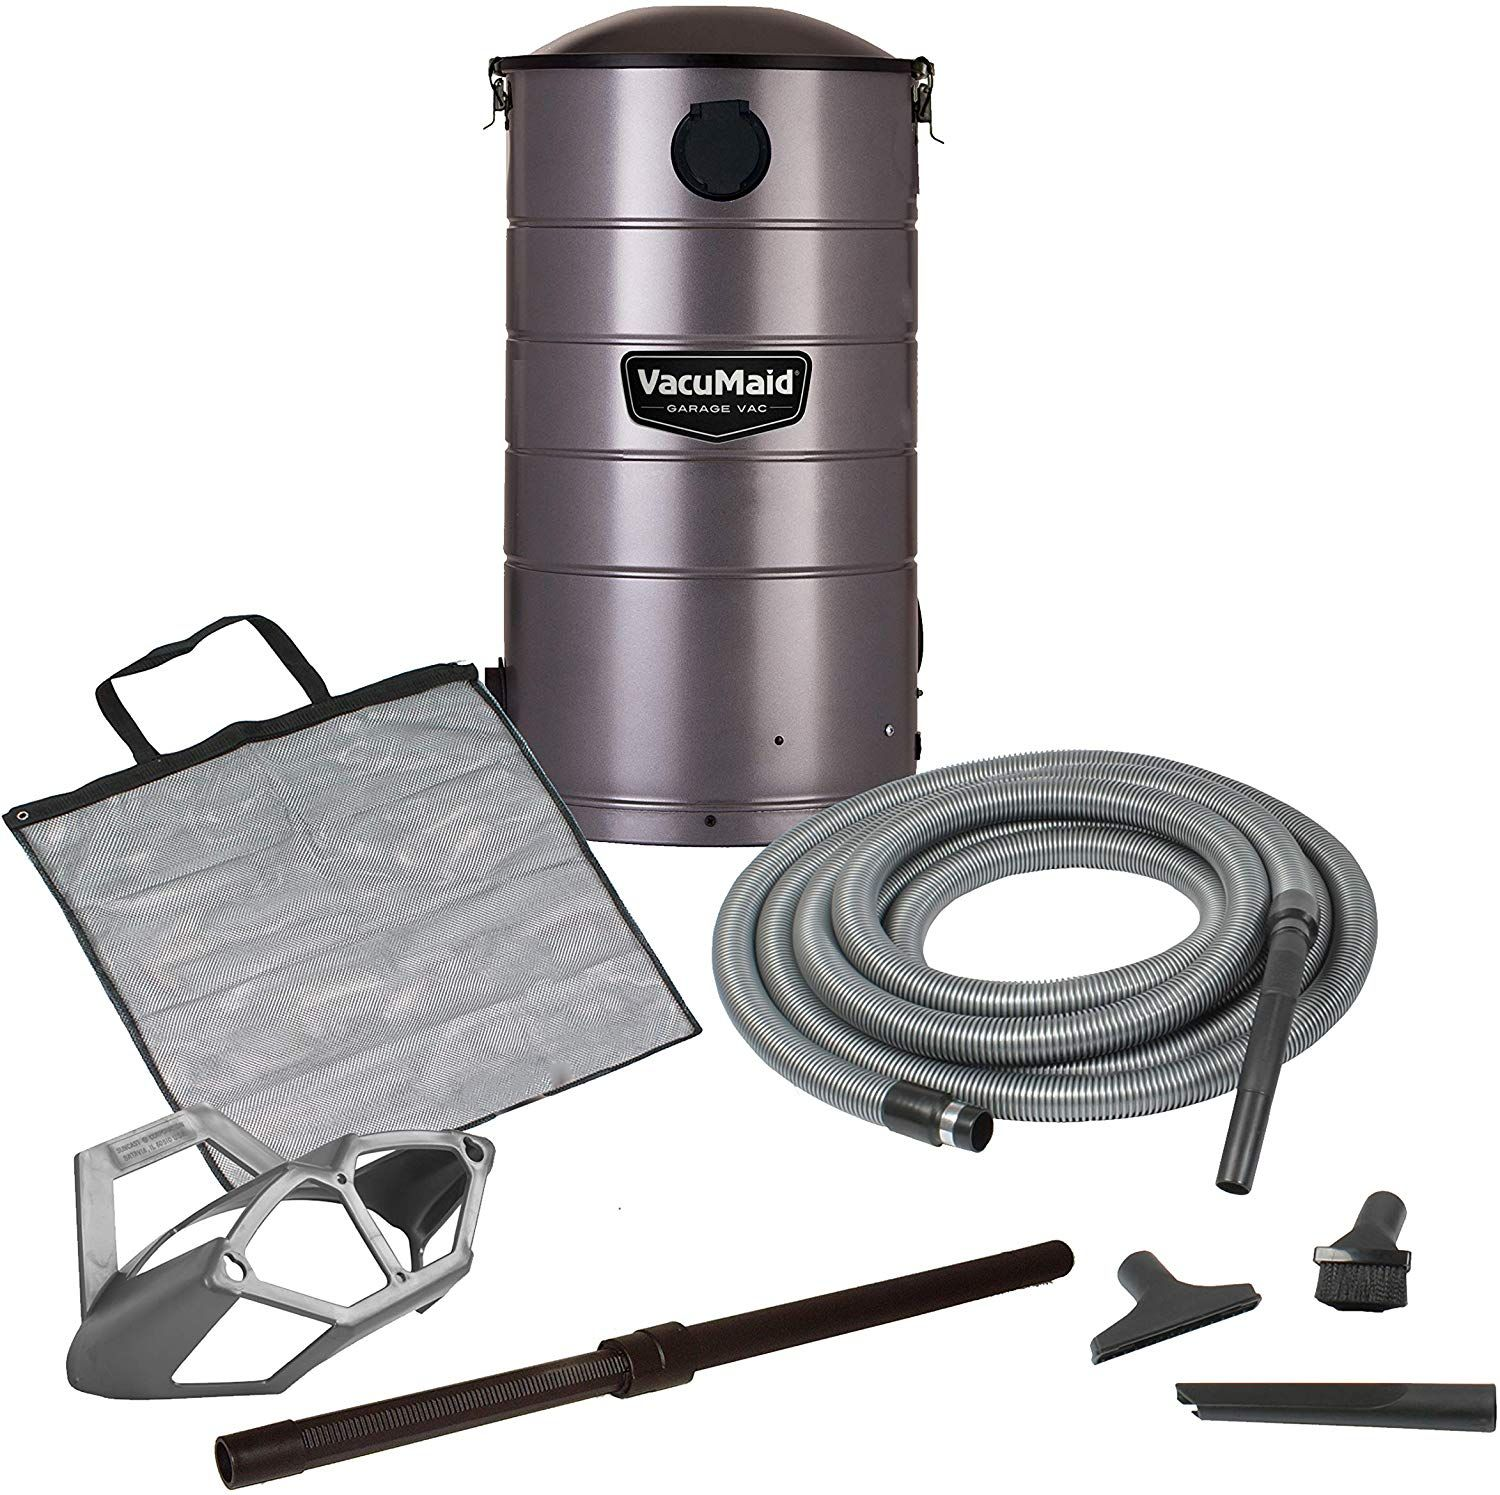 VacuMaid GV50 Wall Mounted Garage and Car Vacuum with 50